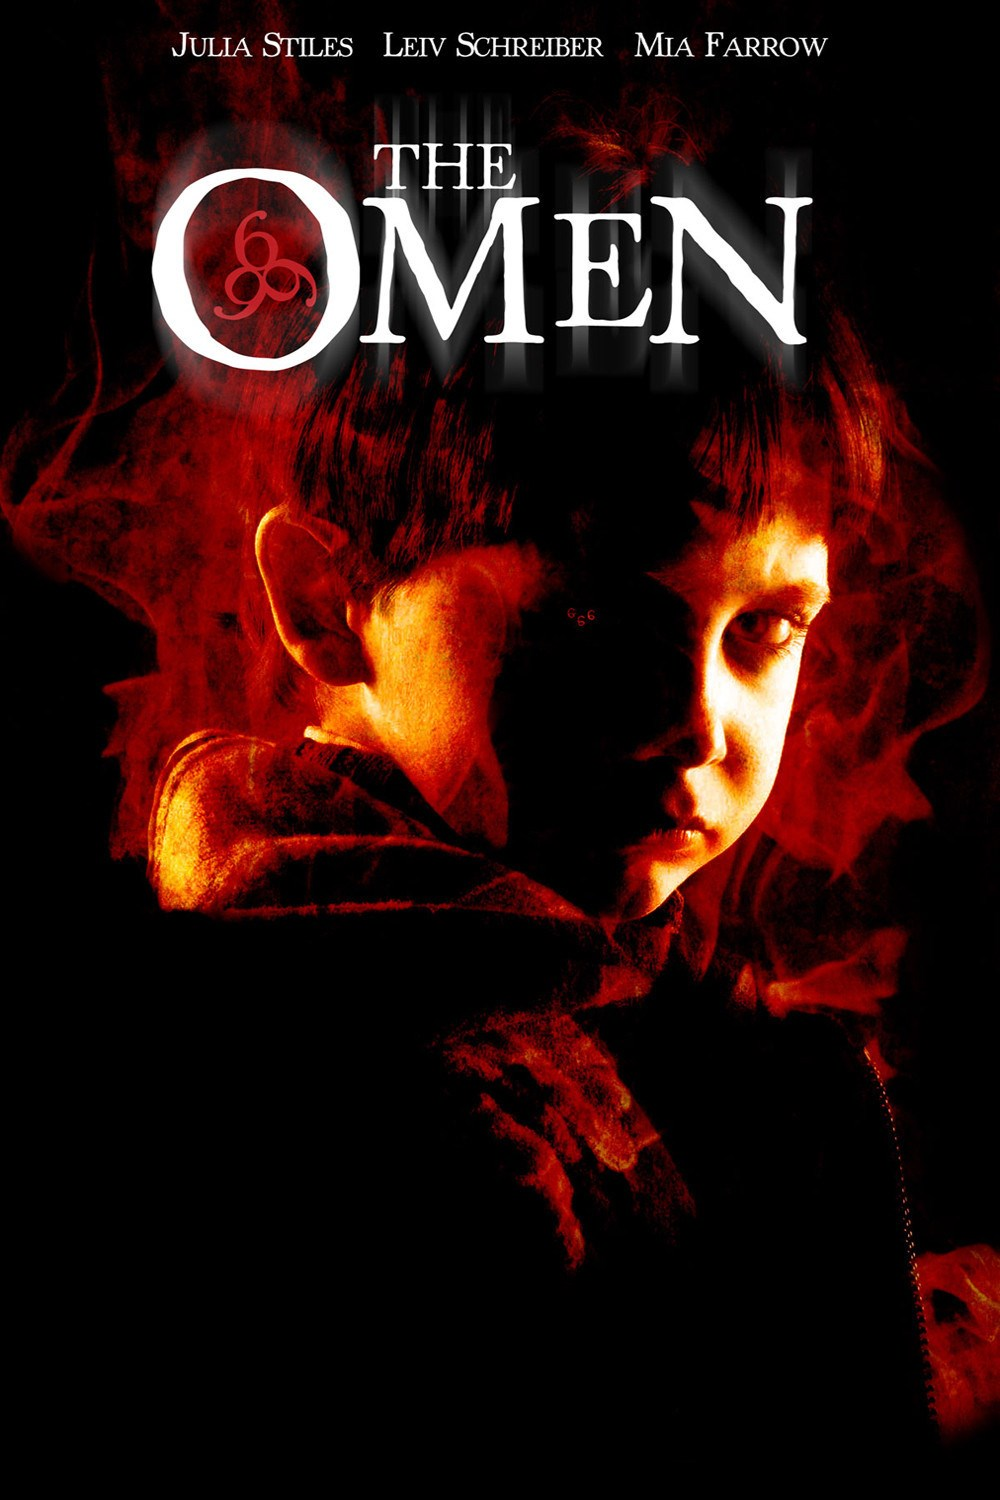 Image gallery the omen 2006 for Portent vs omen